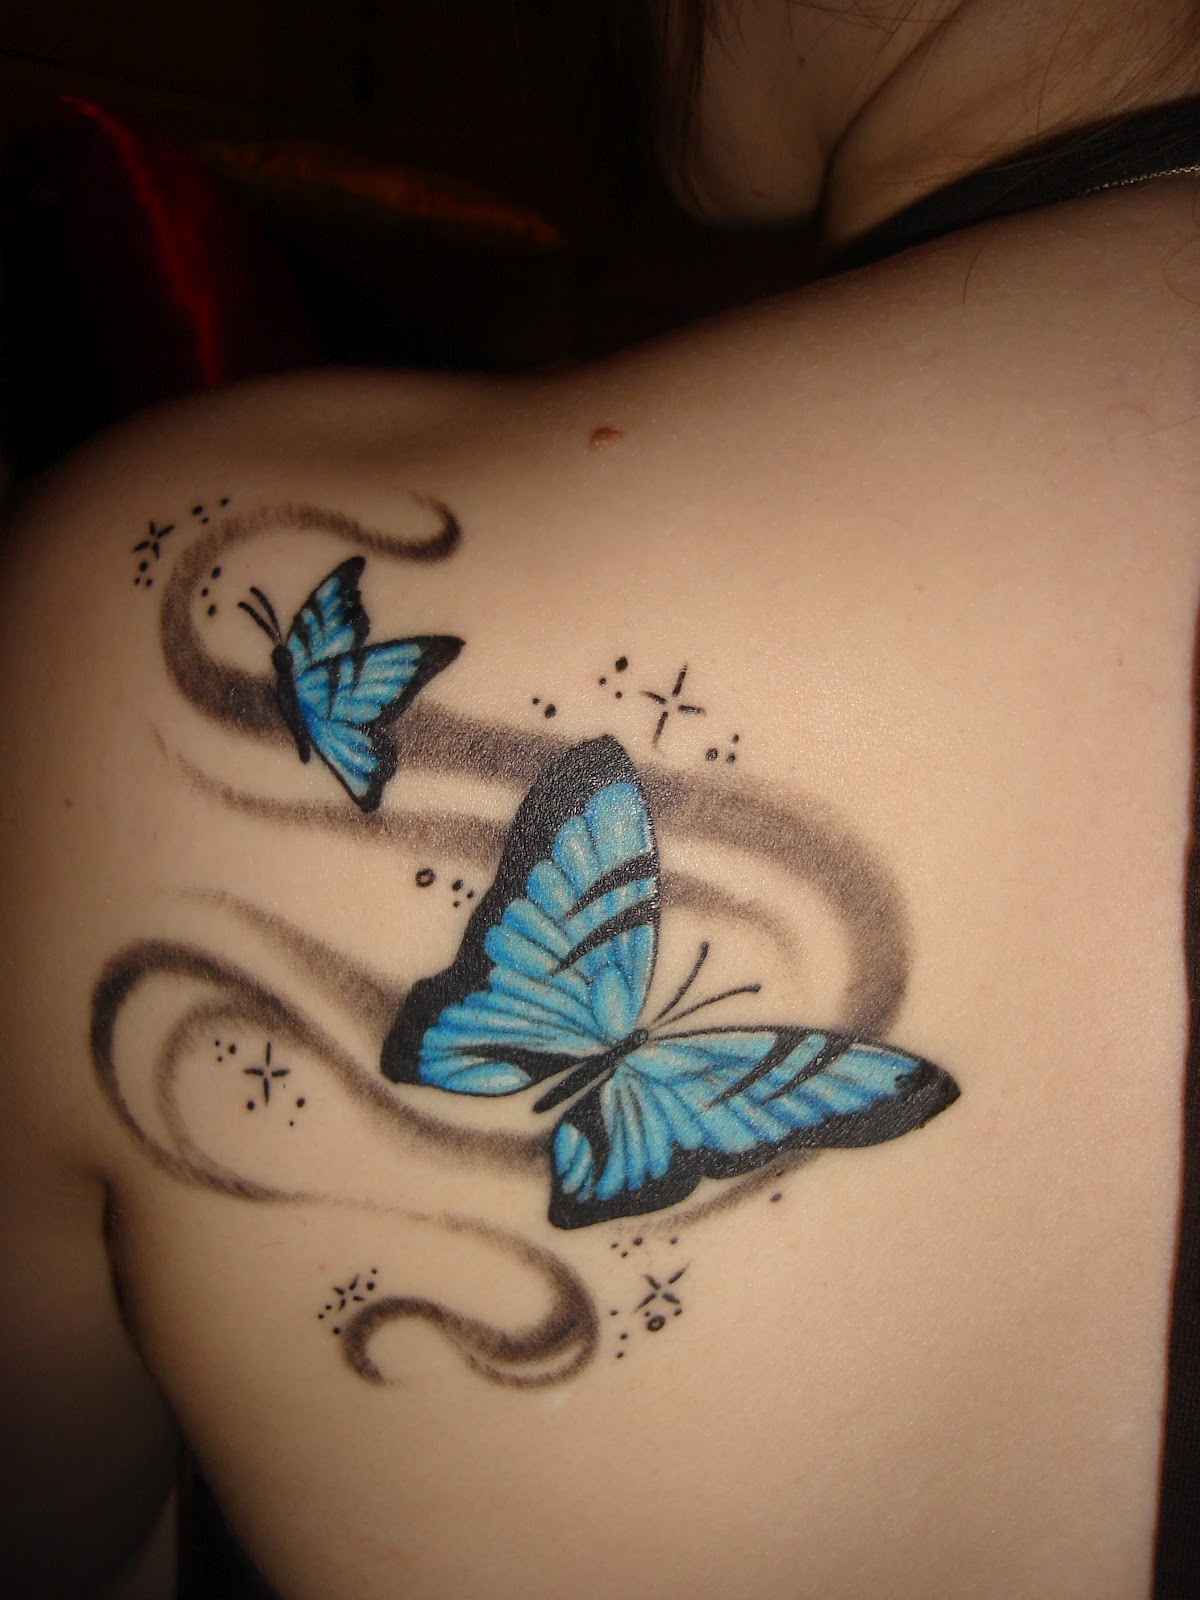 How To Become Fashionable Tattoos Designs